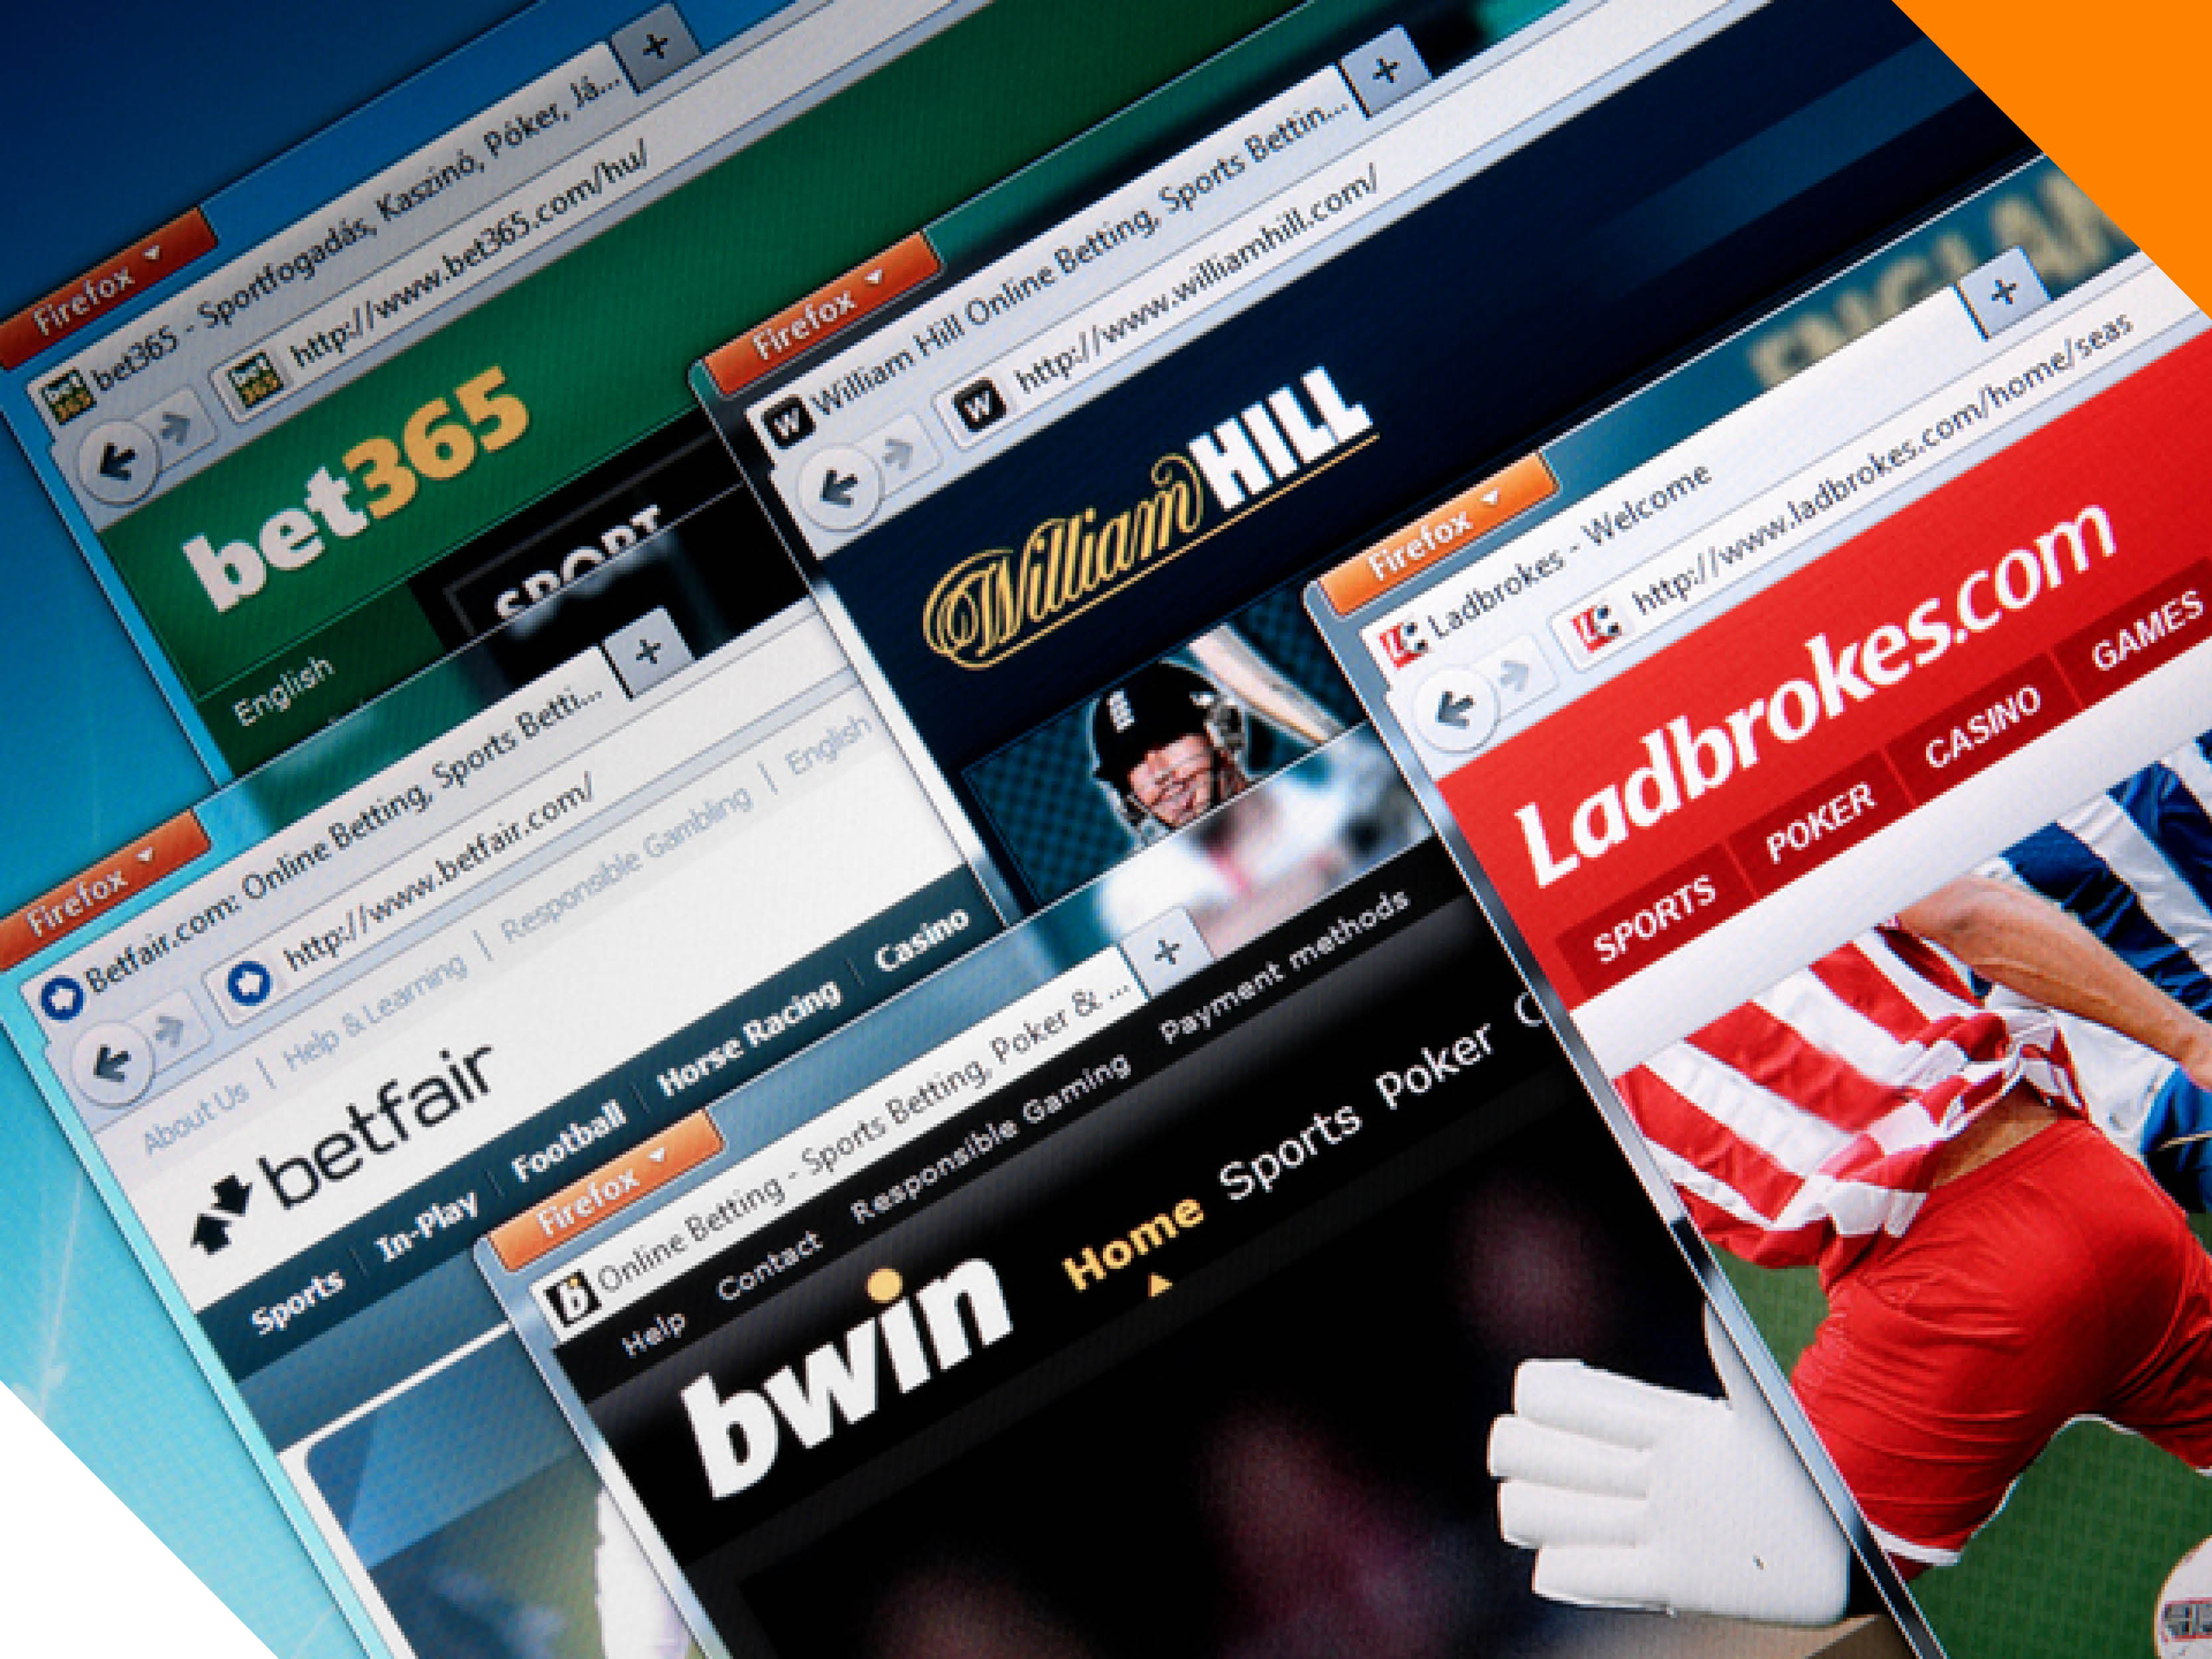 Bet securely with online pro sports betting with e-check service